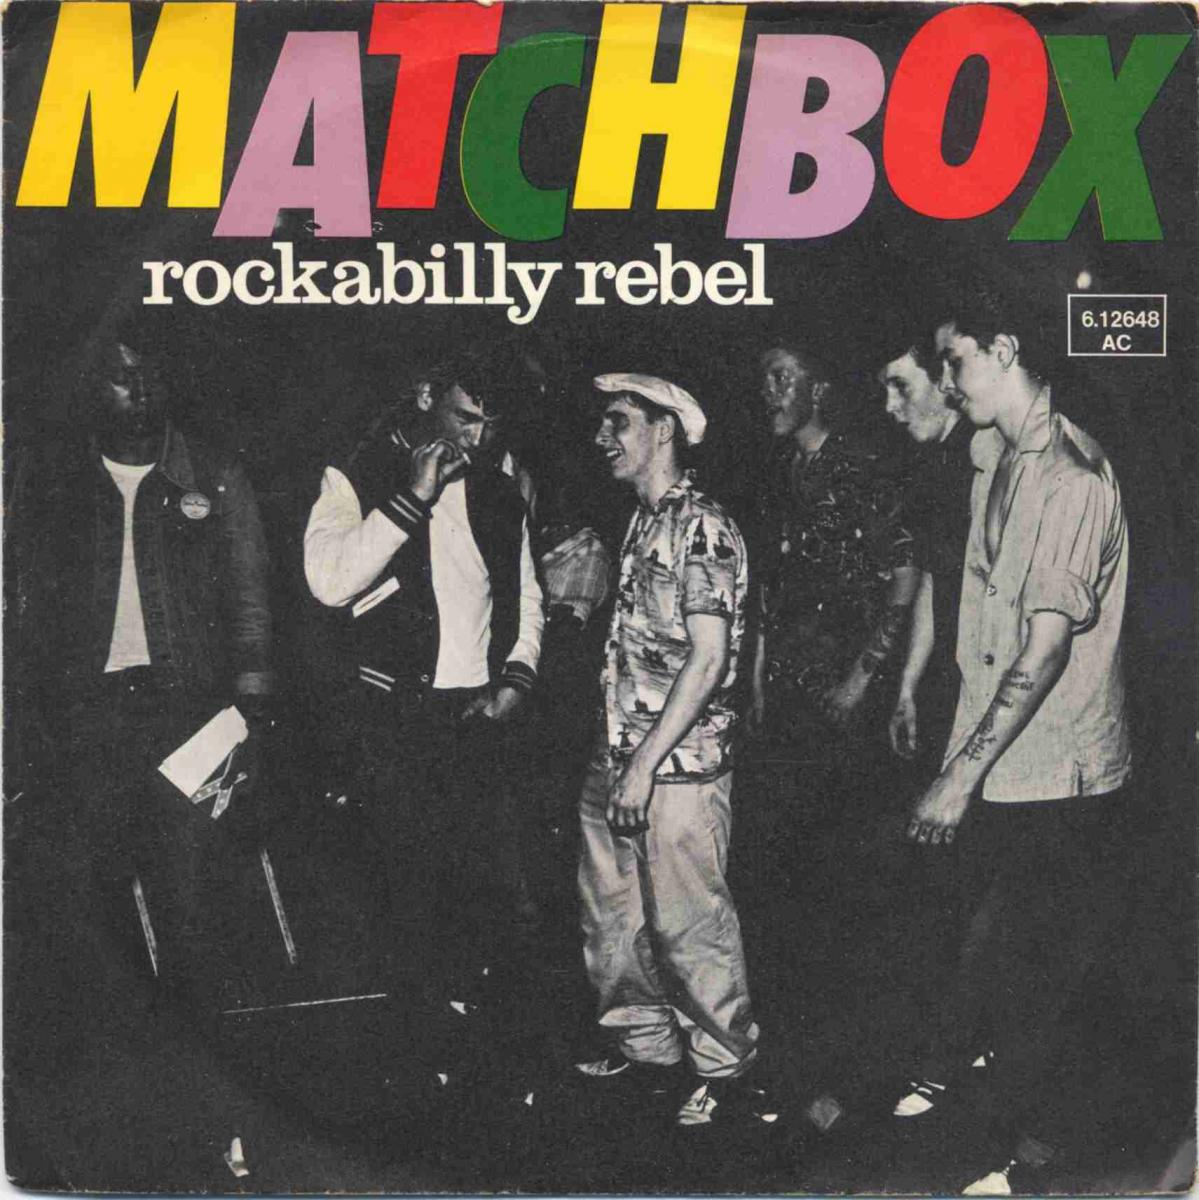 Vinyl-Single: <b><br>Matchbox: <br>Rockabilly Rebel / I Don\'t Wanna Boogie Alone </b><br>Magnet 6.12648 AC, (P) 1979